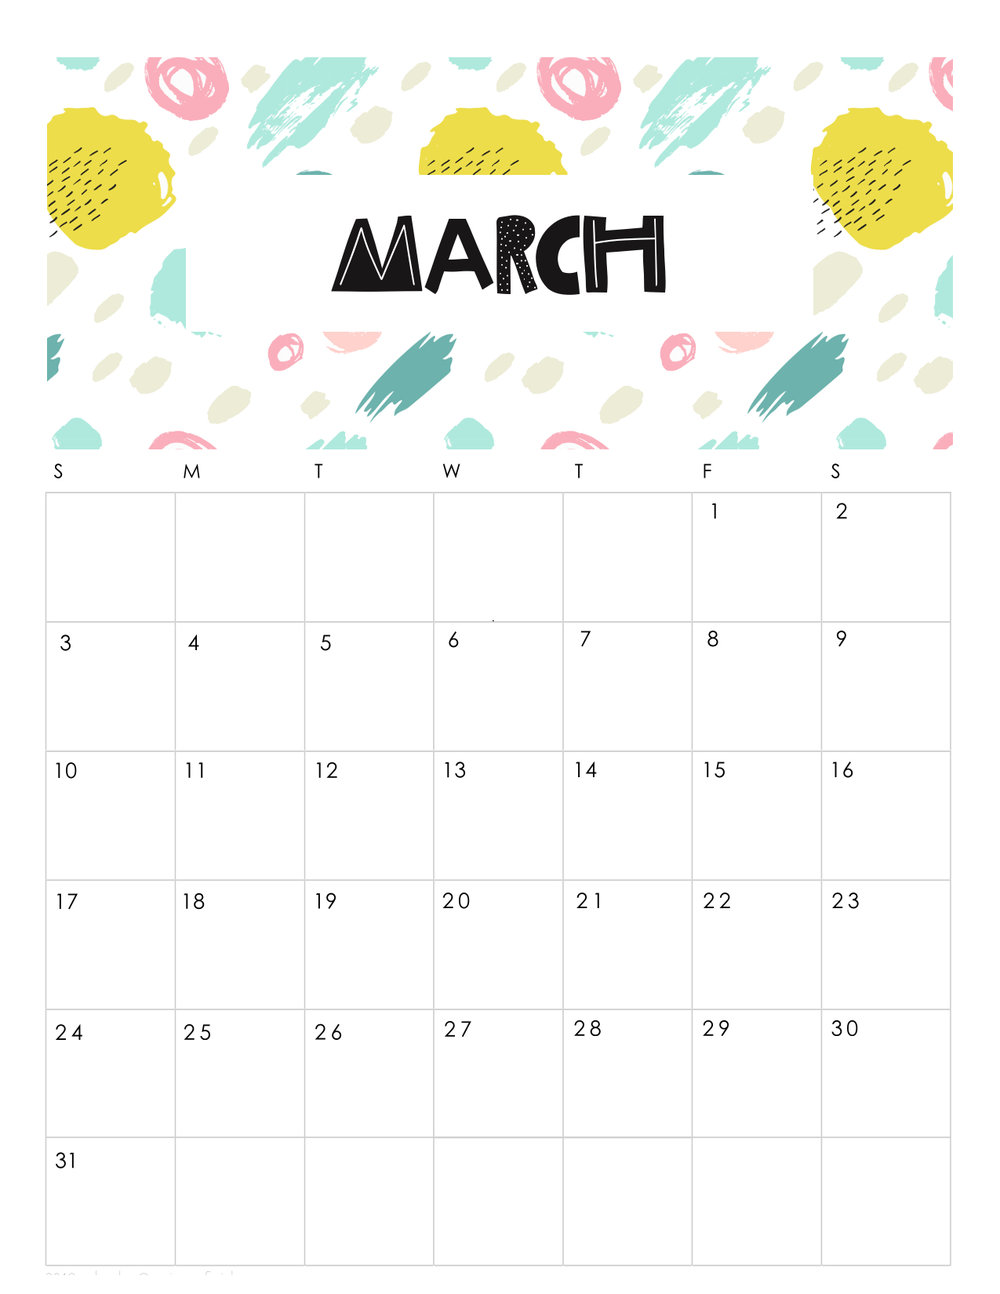 free-printable-abstract-patterned-calendar-2019-march.jpg